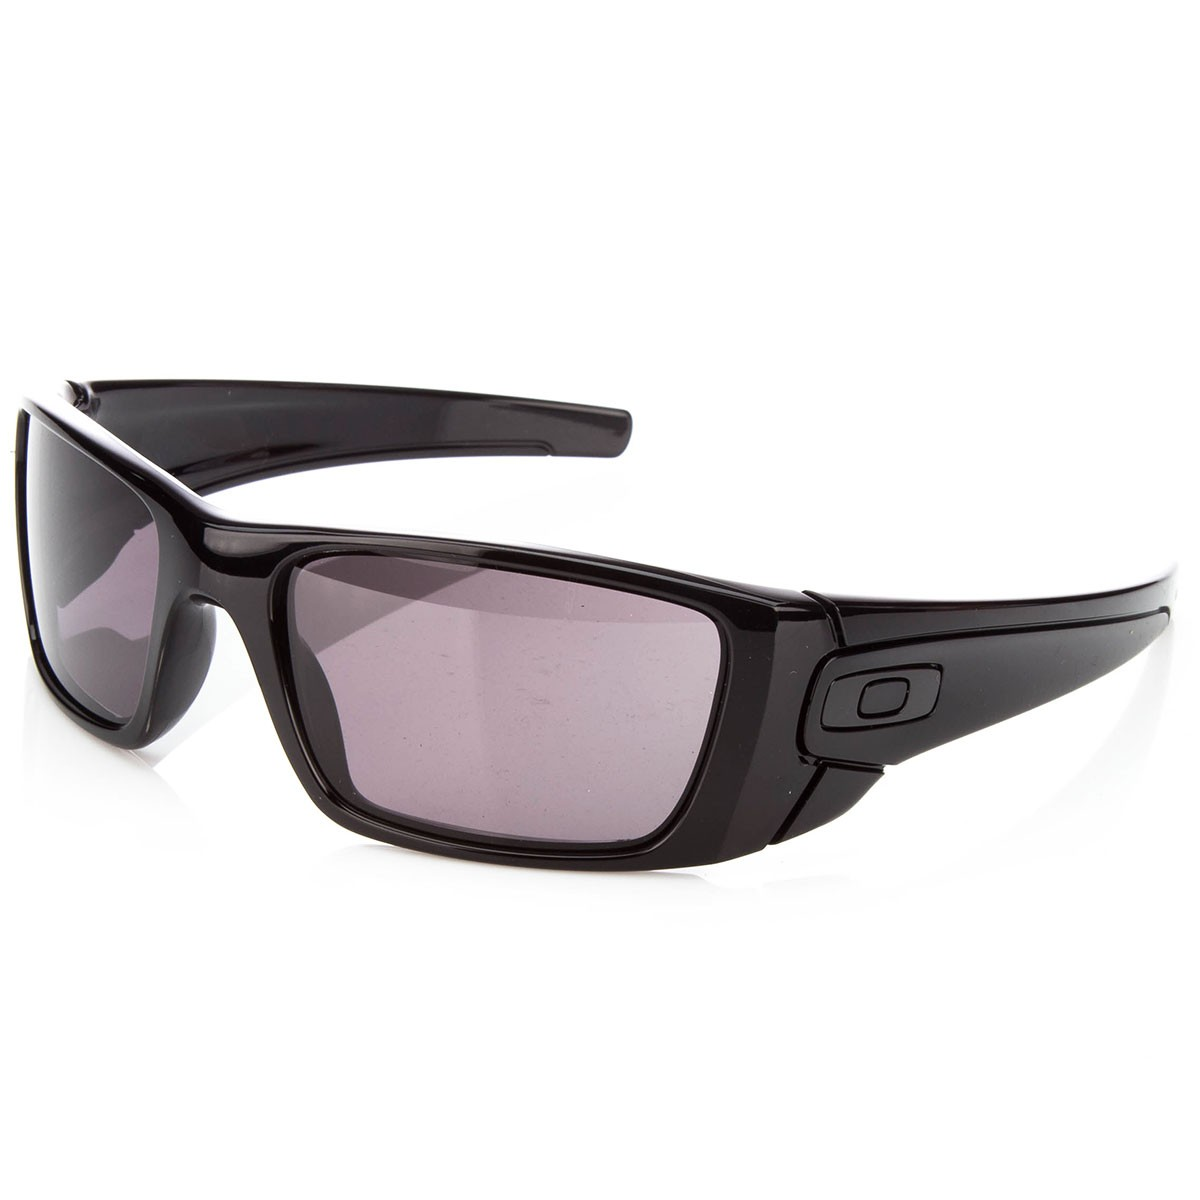 Oakley Fuel Cell Sunglasses Polished Black With Warm Grey